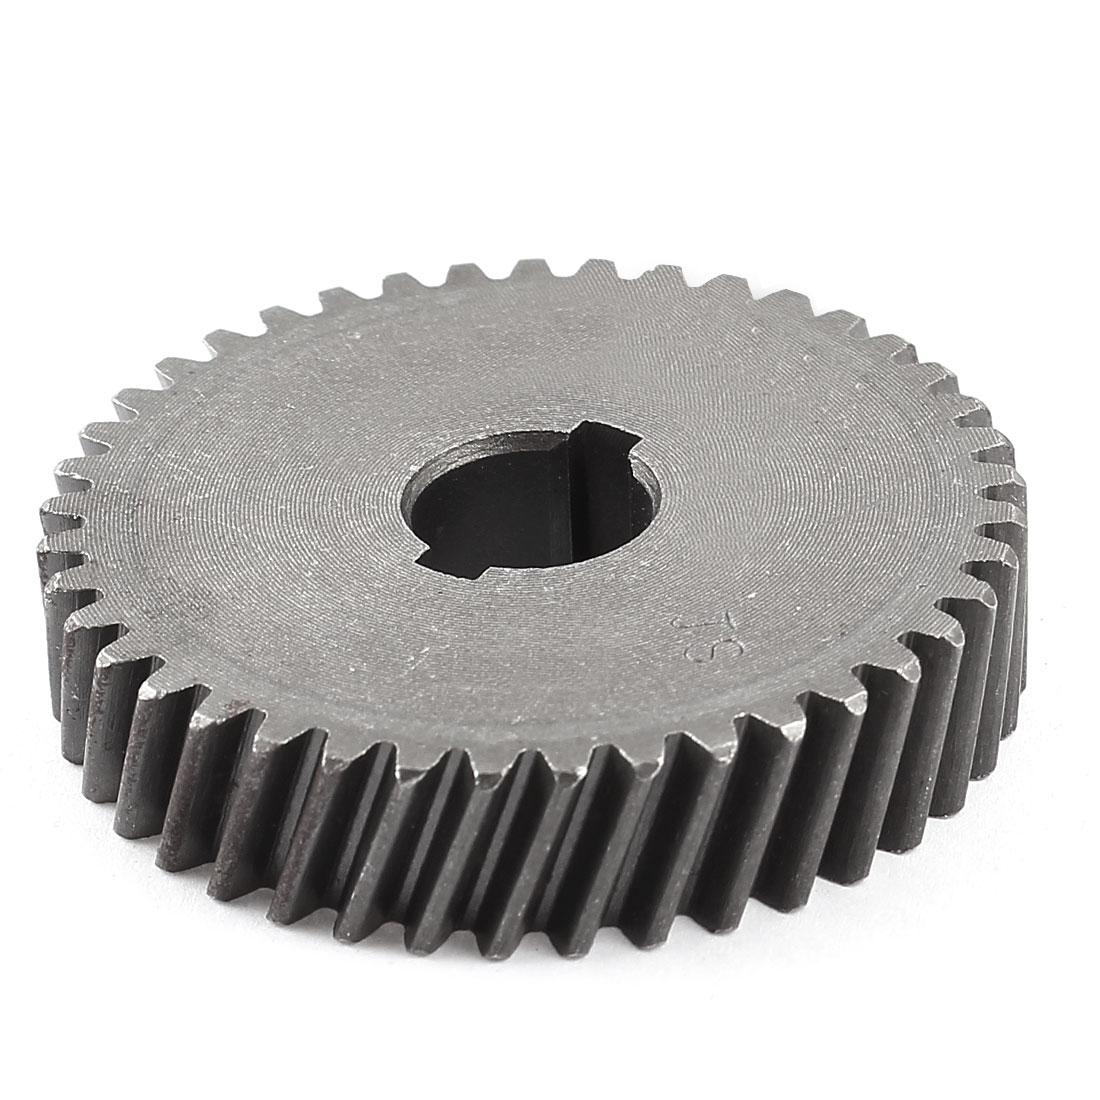 Power Tool Replacement 41 Teeth Spiral Gear for Makita 0810 Hammer Drill